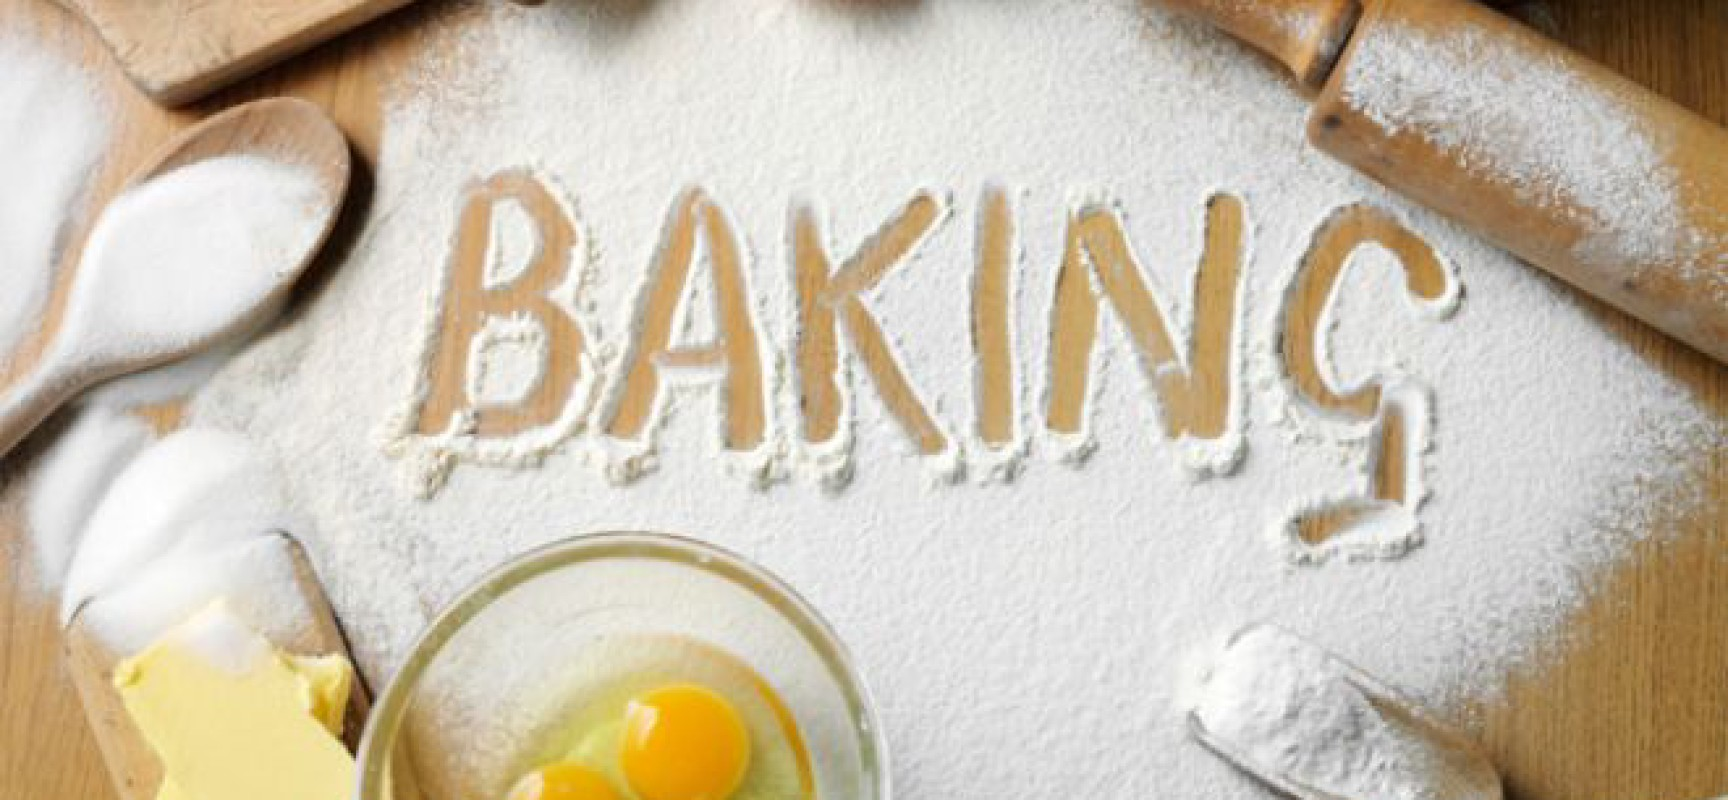 List Of The Basic Equipments Needed For A Bakery